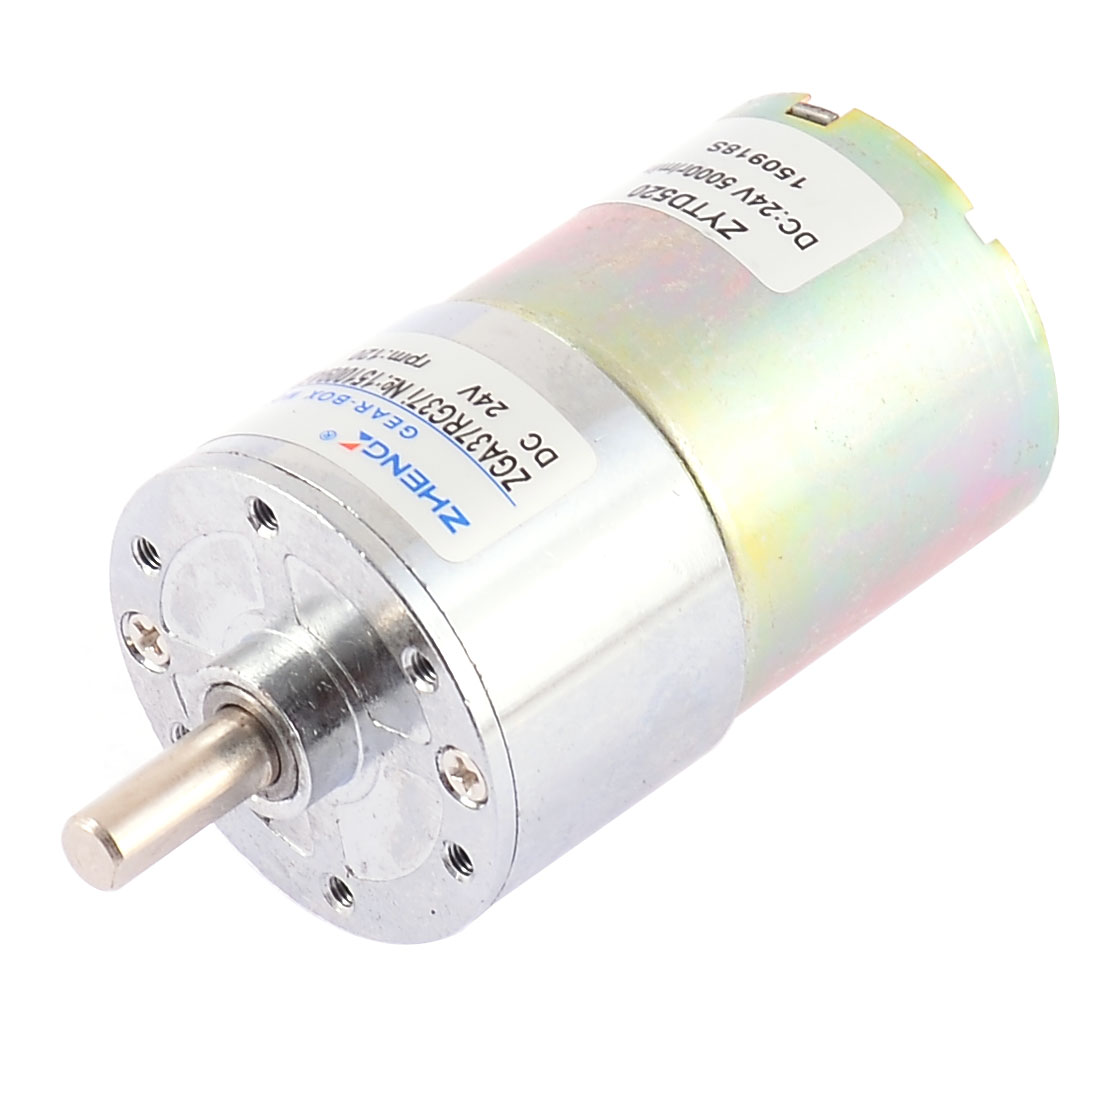 DC 24V 0.33A 11.3kg.cm 120RPM Speed Reducing Geared Motor